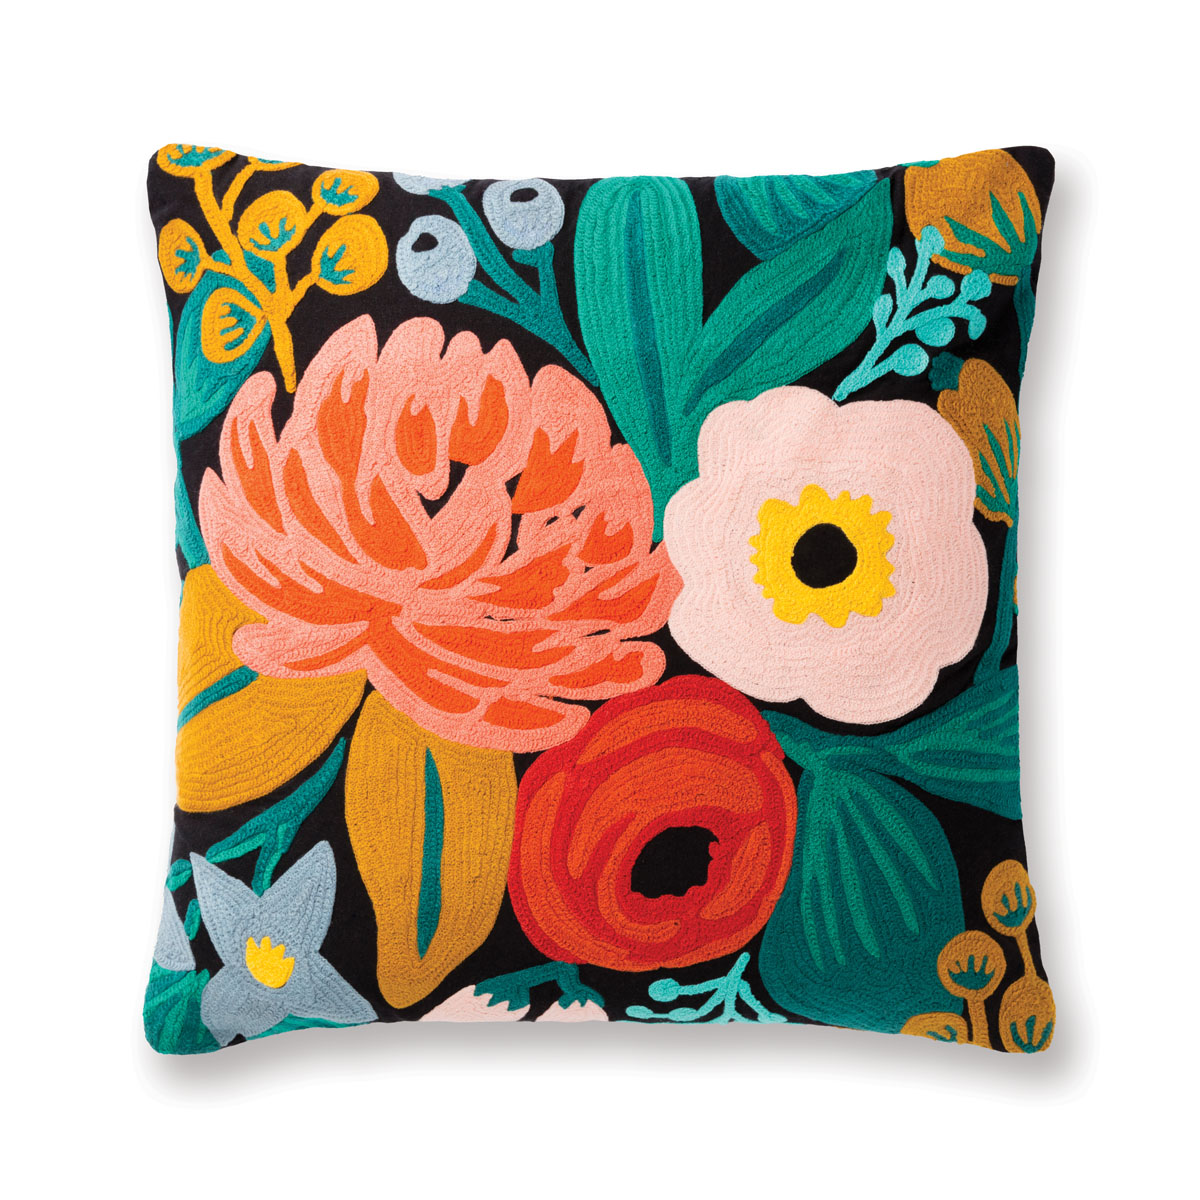 "Floral throw pillow. From Rifle's cheeky sense of humor and an explosion of color, choose strikingly bold designs on plush backdrops in sturdy Loloi fabrics to add verve to any setting. ""I love considering how they will be used in the home and designing pieces that are both colorful and playful but also livable,"" the artist says."